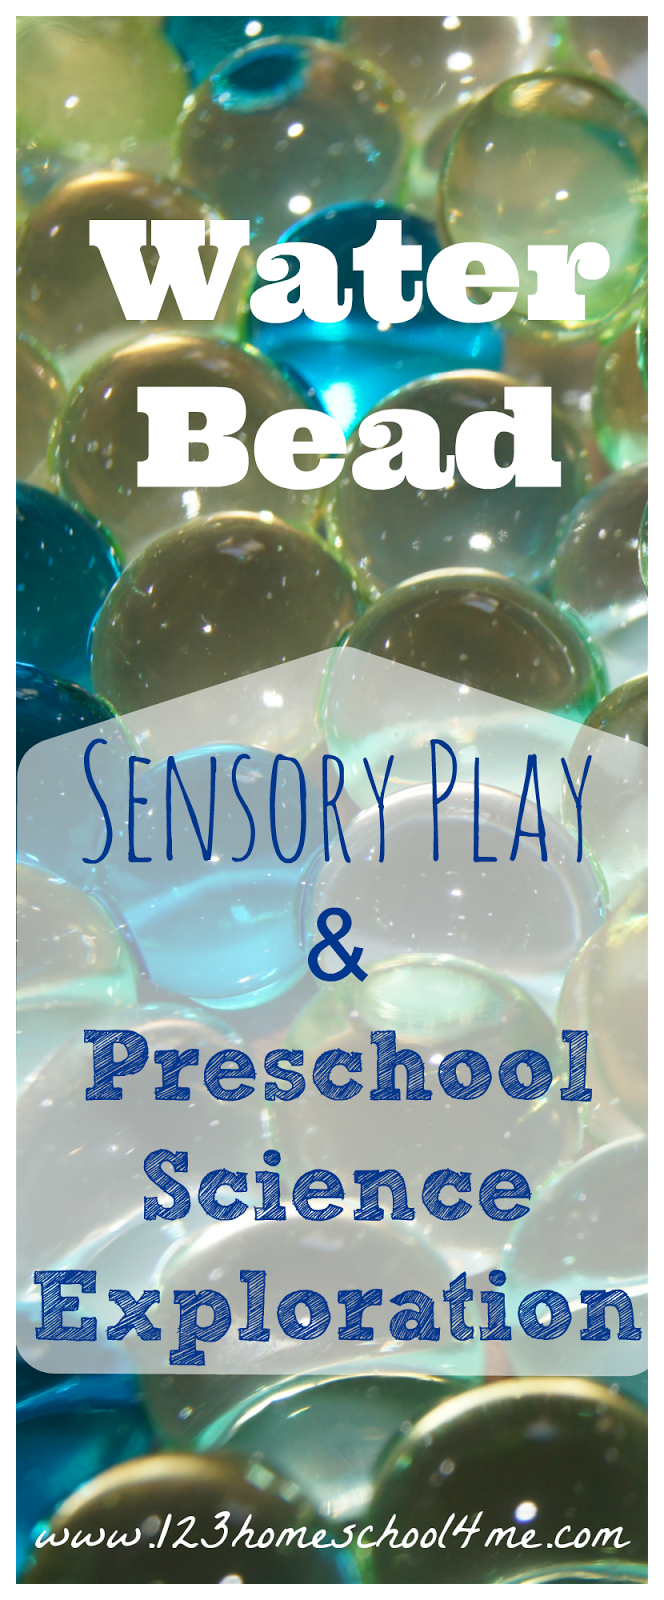 Water Bead Sensory Play and Preschool Science FUN